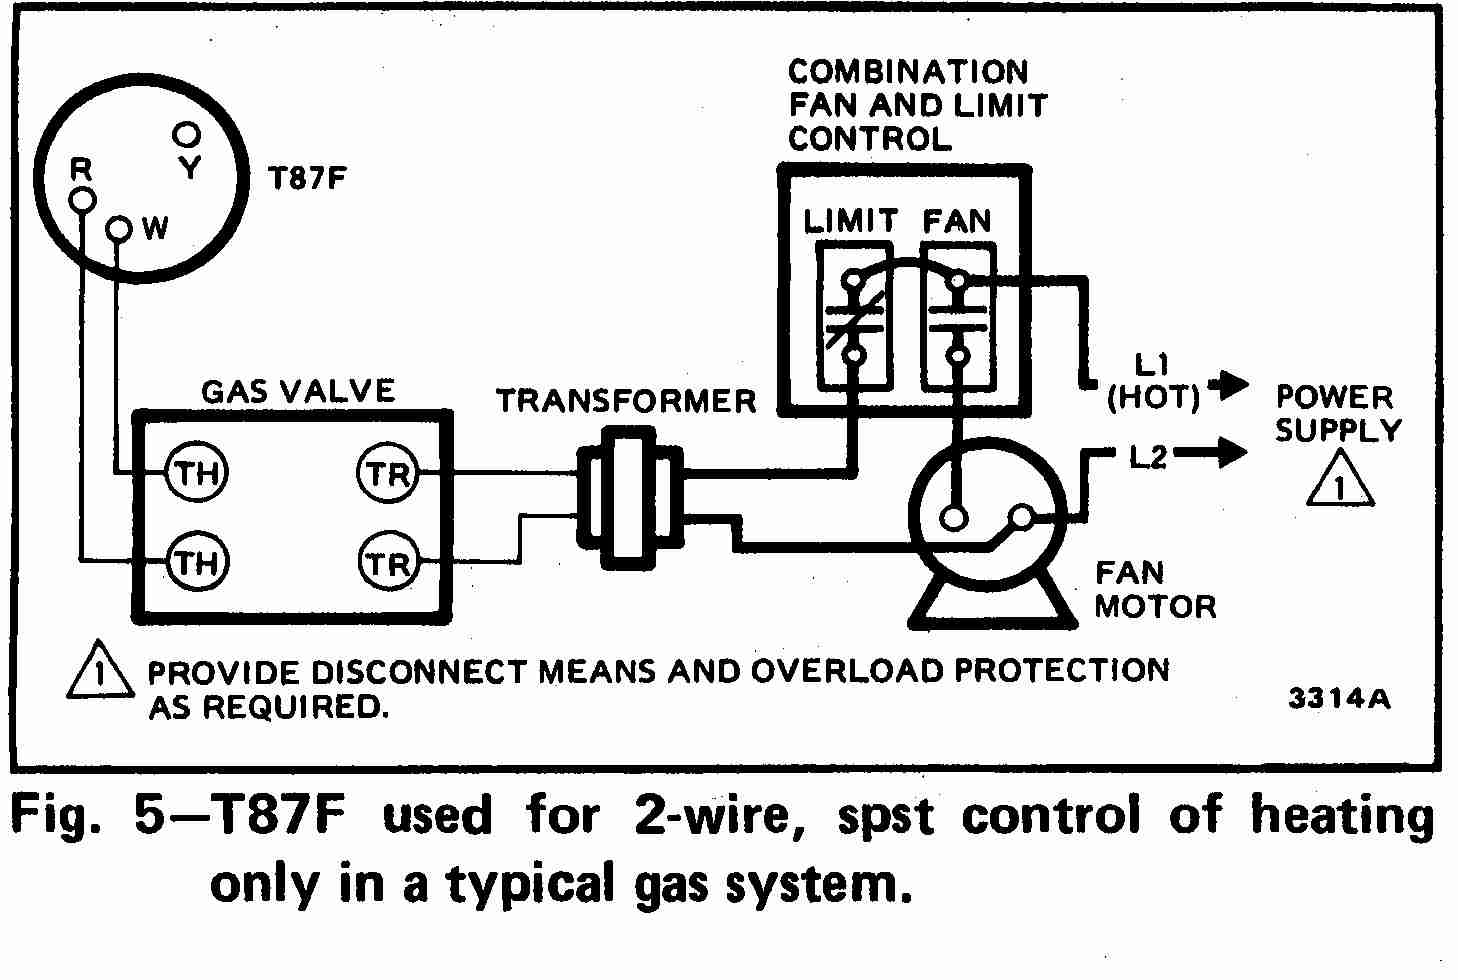 TT_T87F_0002_2Wg_DJF room thermostat wiring diagrams for hvac systems heat only boiler wiring diagram at bayanpartner.co